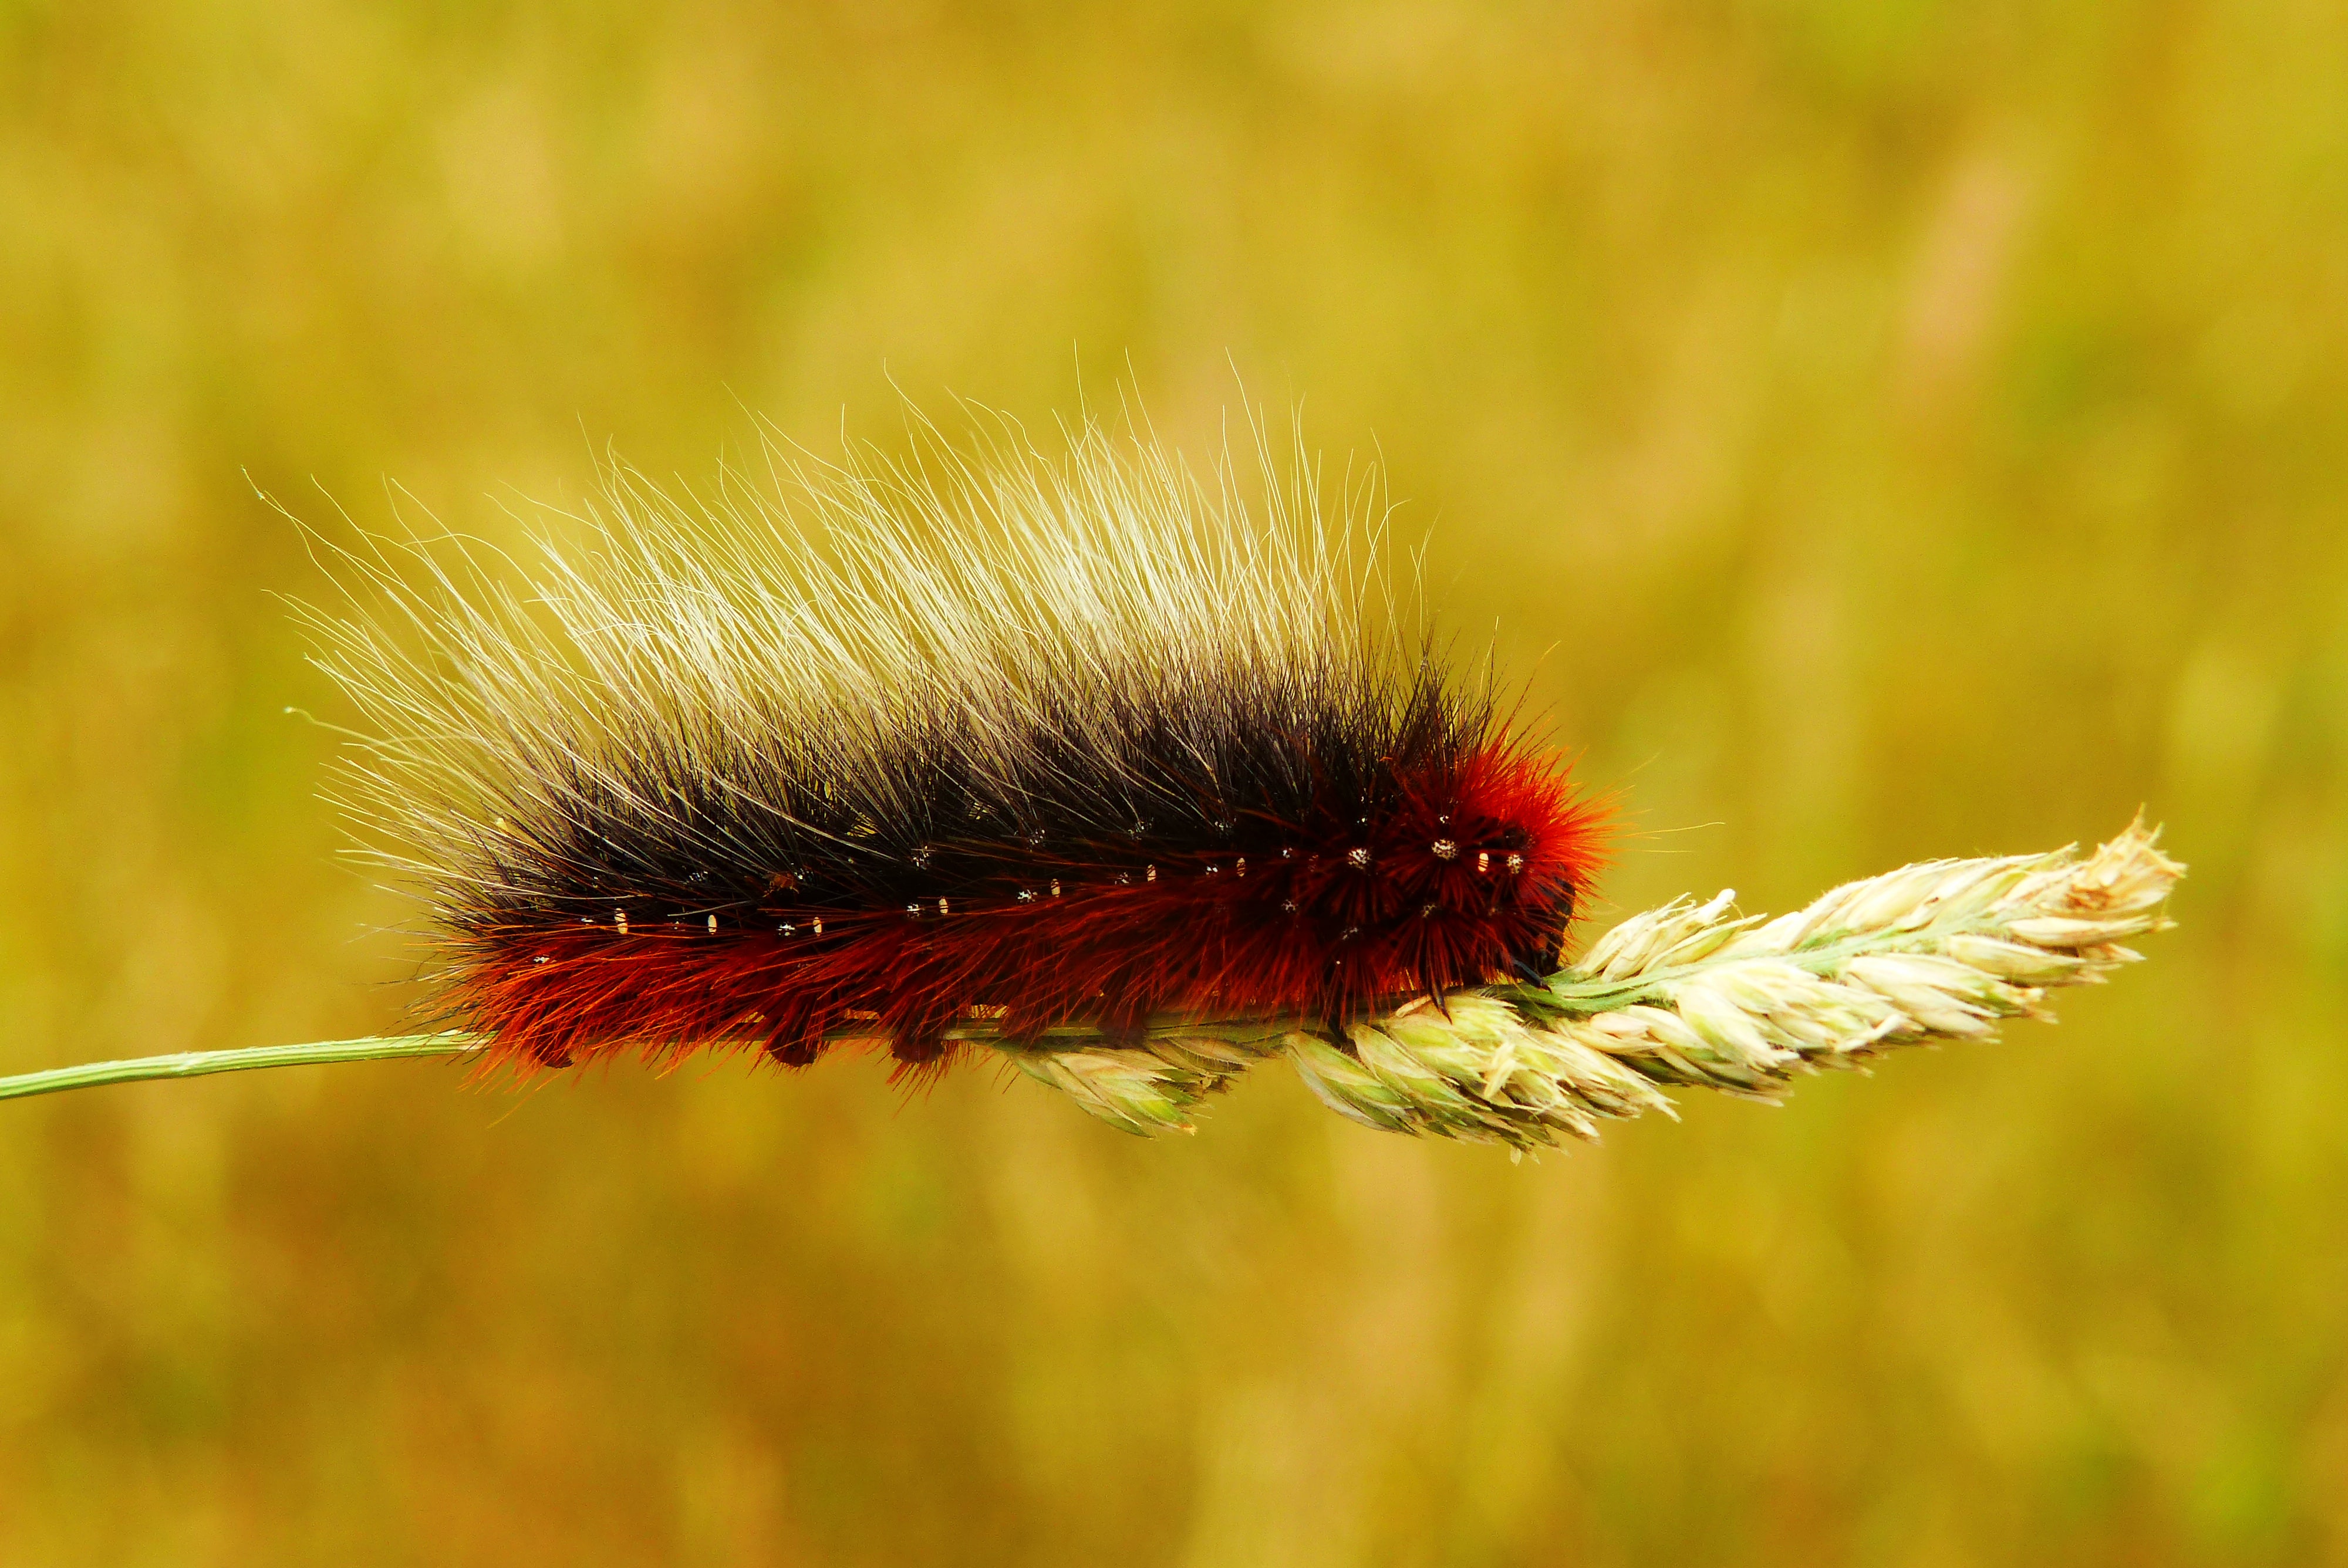 red and black worm